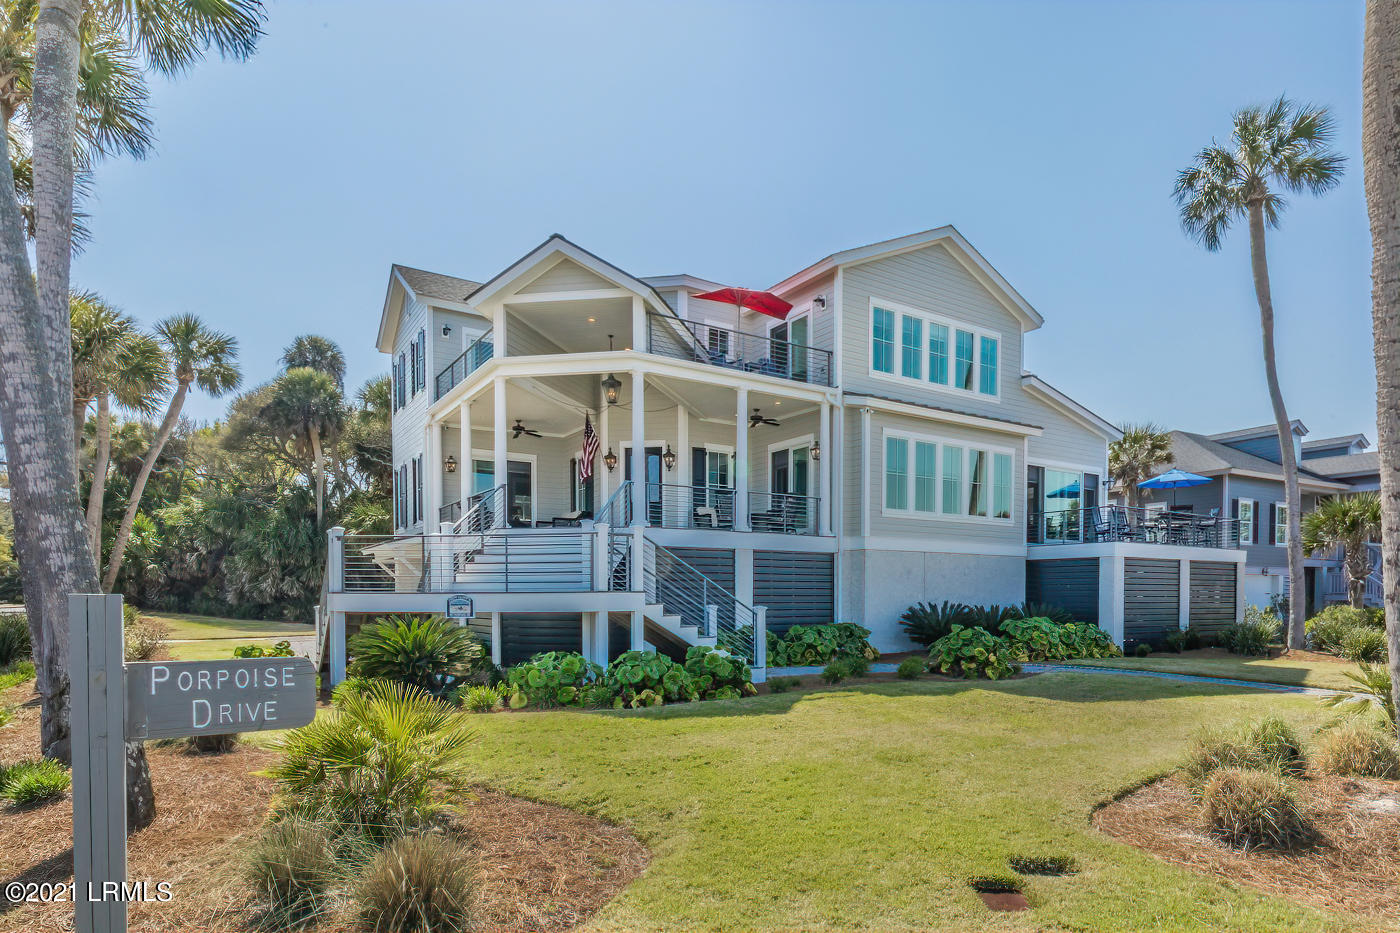 Photo of 497 Porpoise Drive, Fripp Island, SC 29920